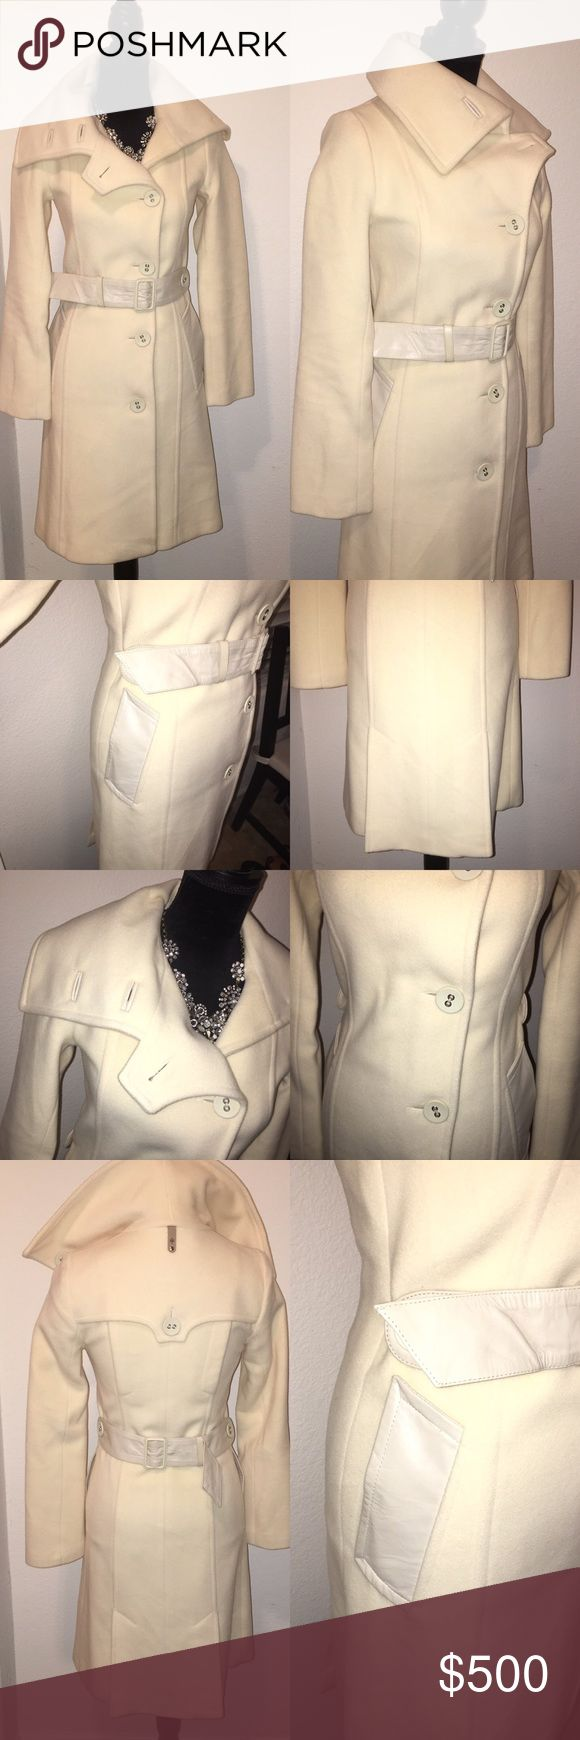 Mackage jacket xxs Cream like new no signs of wear stains or rips been sitting in the dust bag wore this once. The belt can do to the back or front depends on you. Leather belt and leather trims on the pocket and button holes Mackage Jackets & Coats Pea Coats